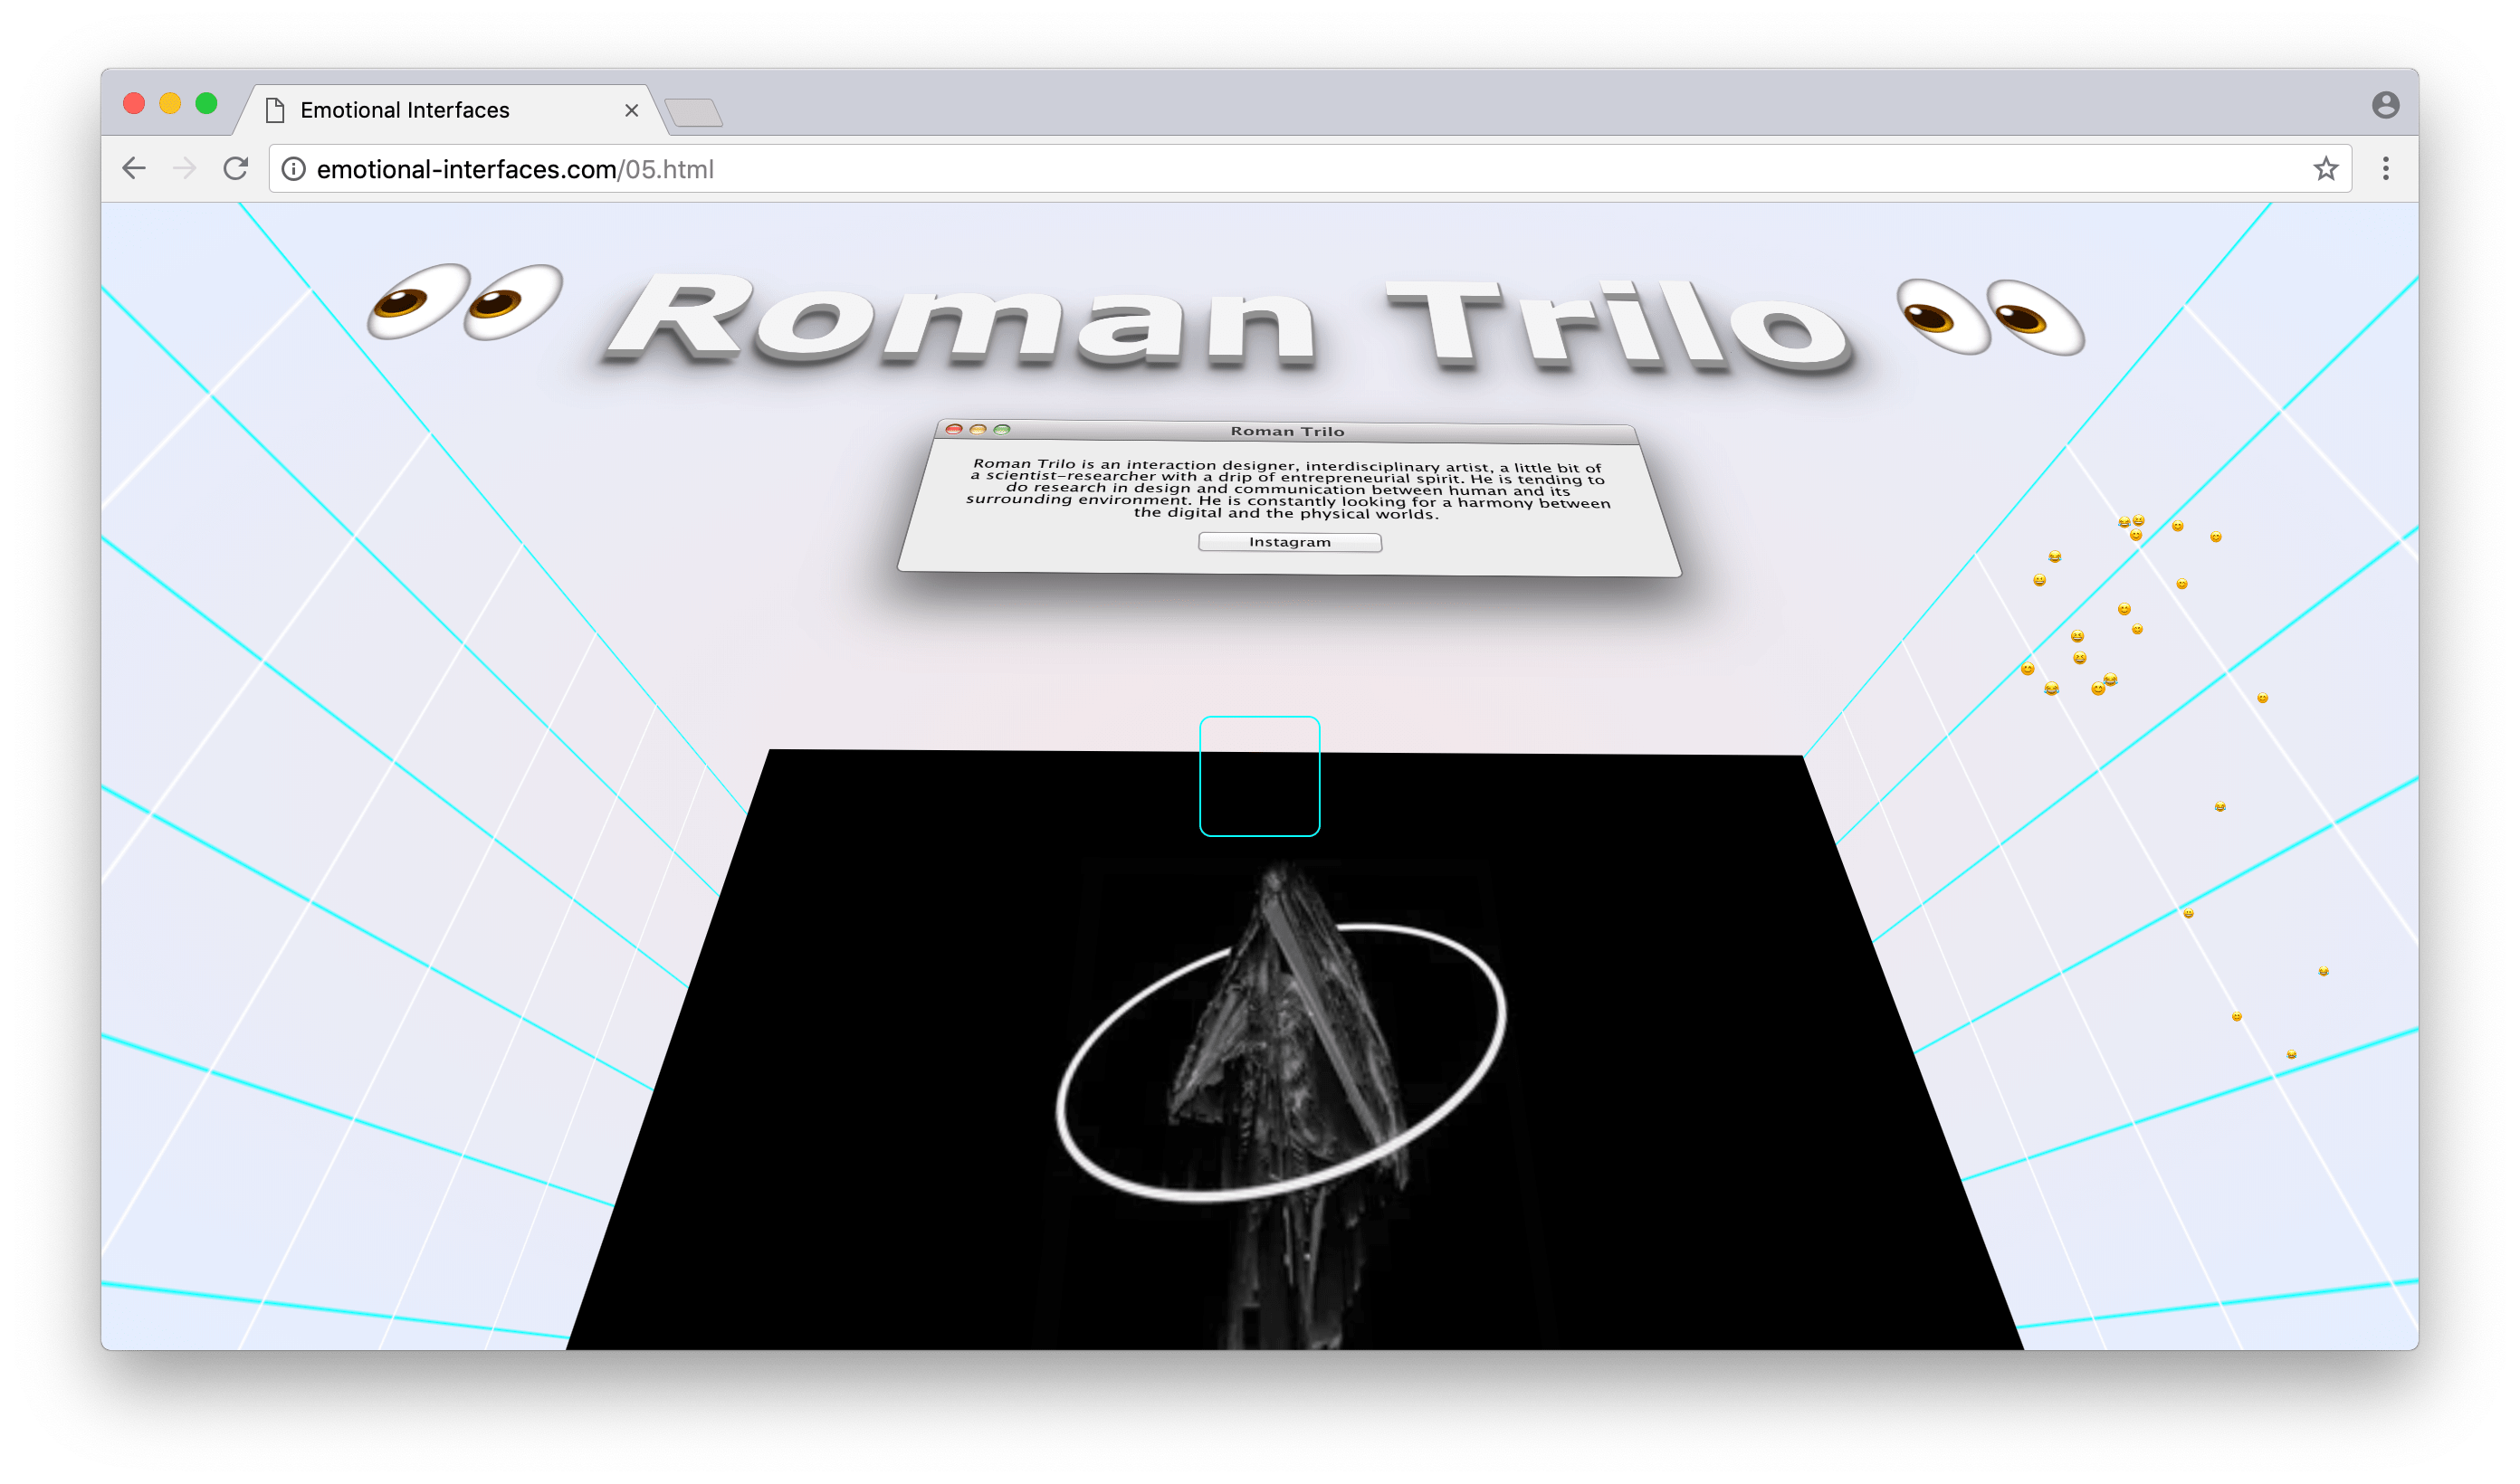 Roman Trilo at Emotional Interfaces' online exhibition